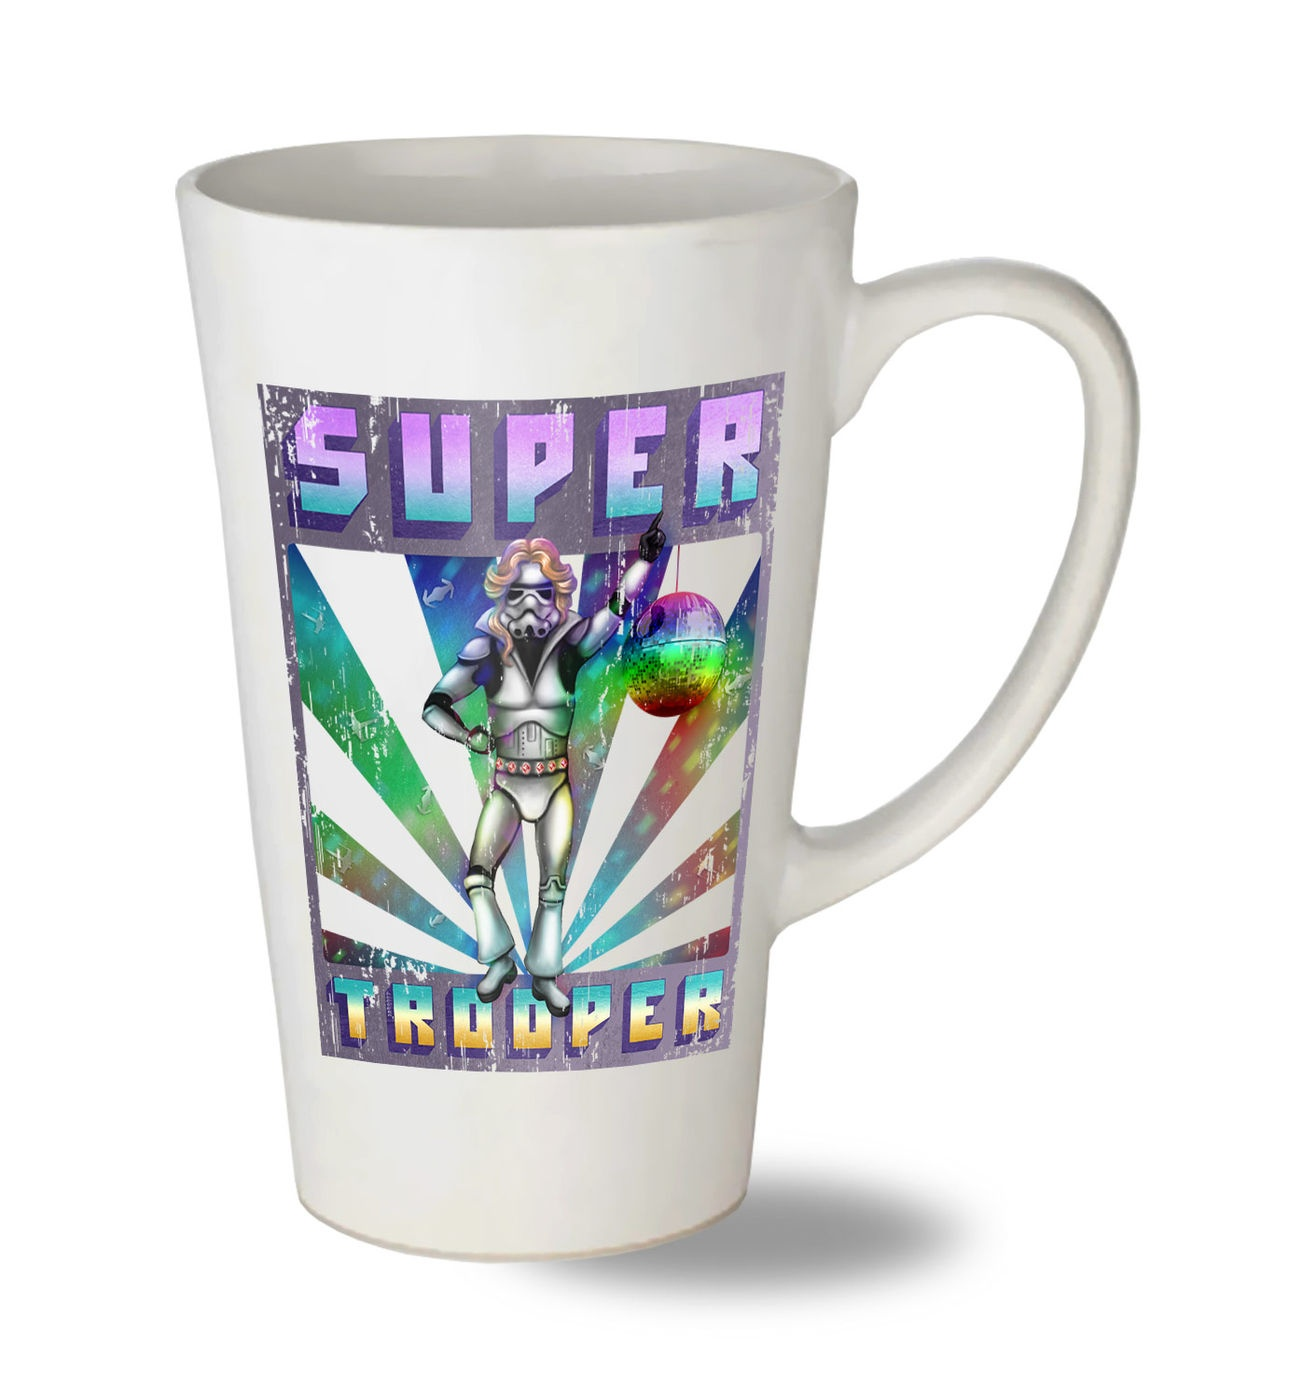 Super Trooper tall latte mug - funny ABBA Star Wars parody latte mug